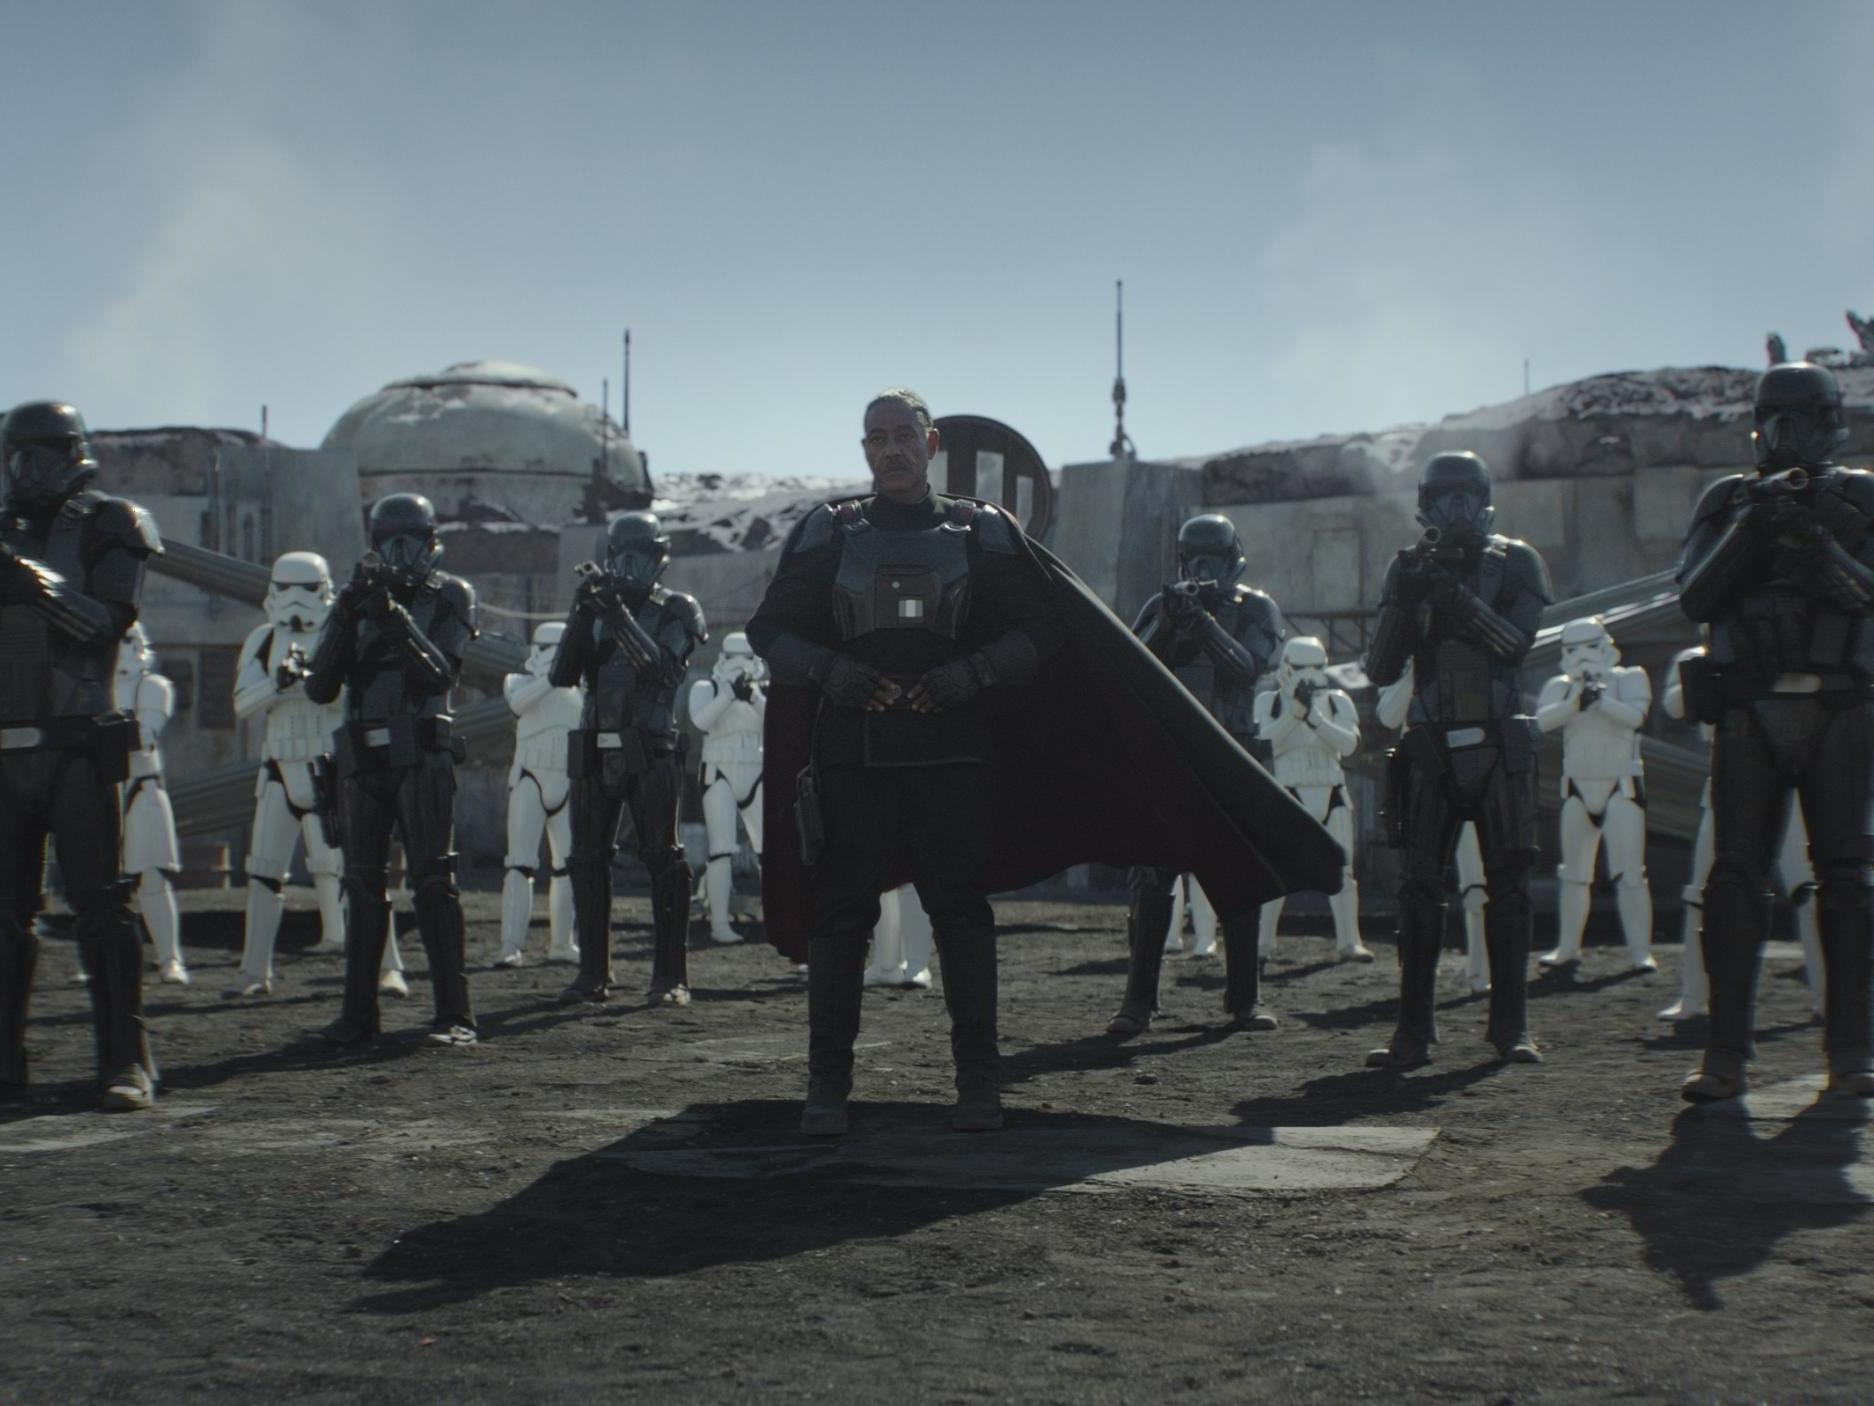 7 Star Wars references you may have missed in The Mandalorian's season 1 finale